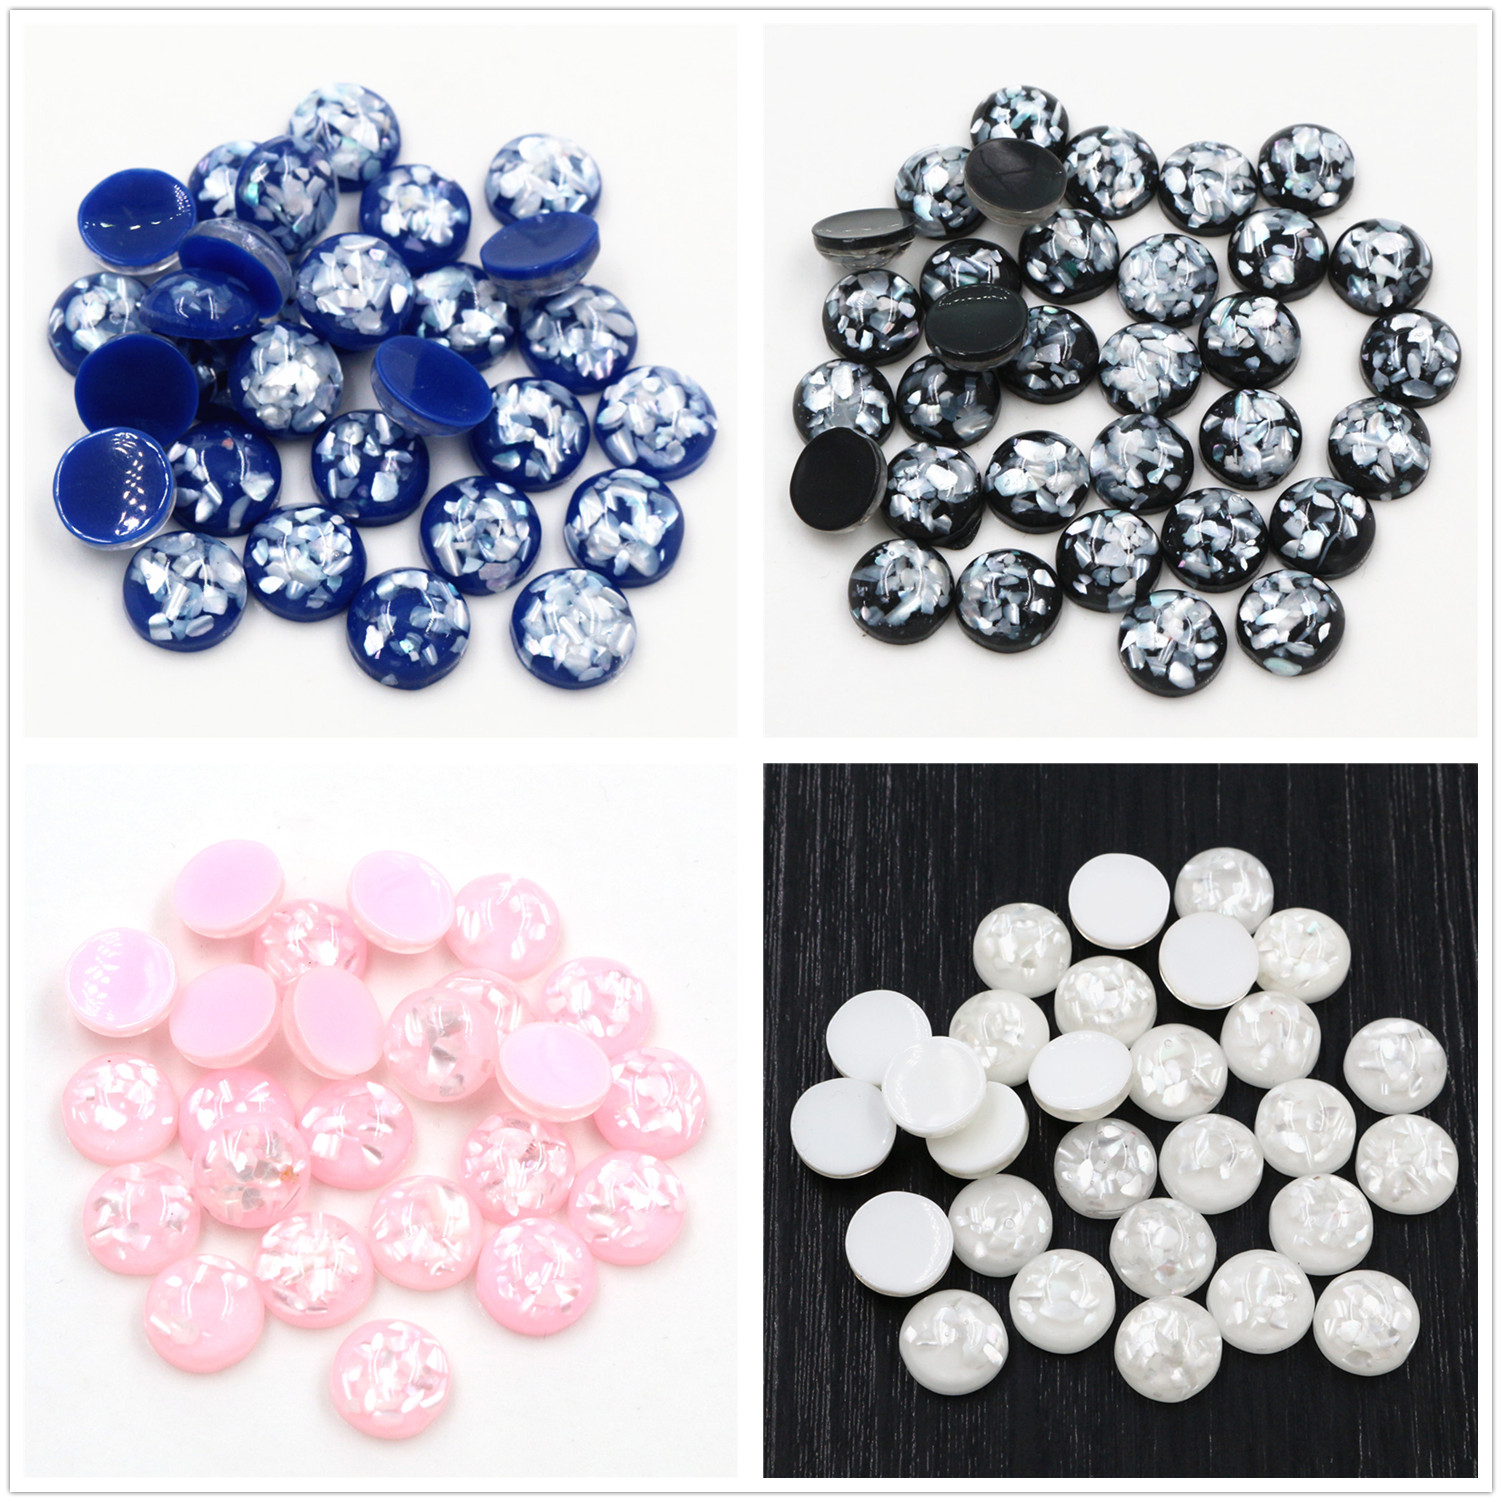 New Style 40pcs 8/10/12mm 4 Colors Built-in Real Shells Style Flat Back Resin Cabochons Fit 8/10/12mm Cameo Base Cabochons